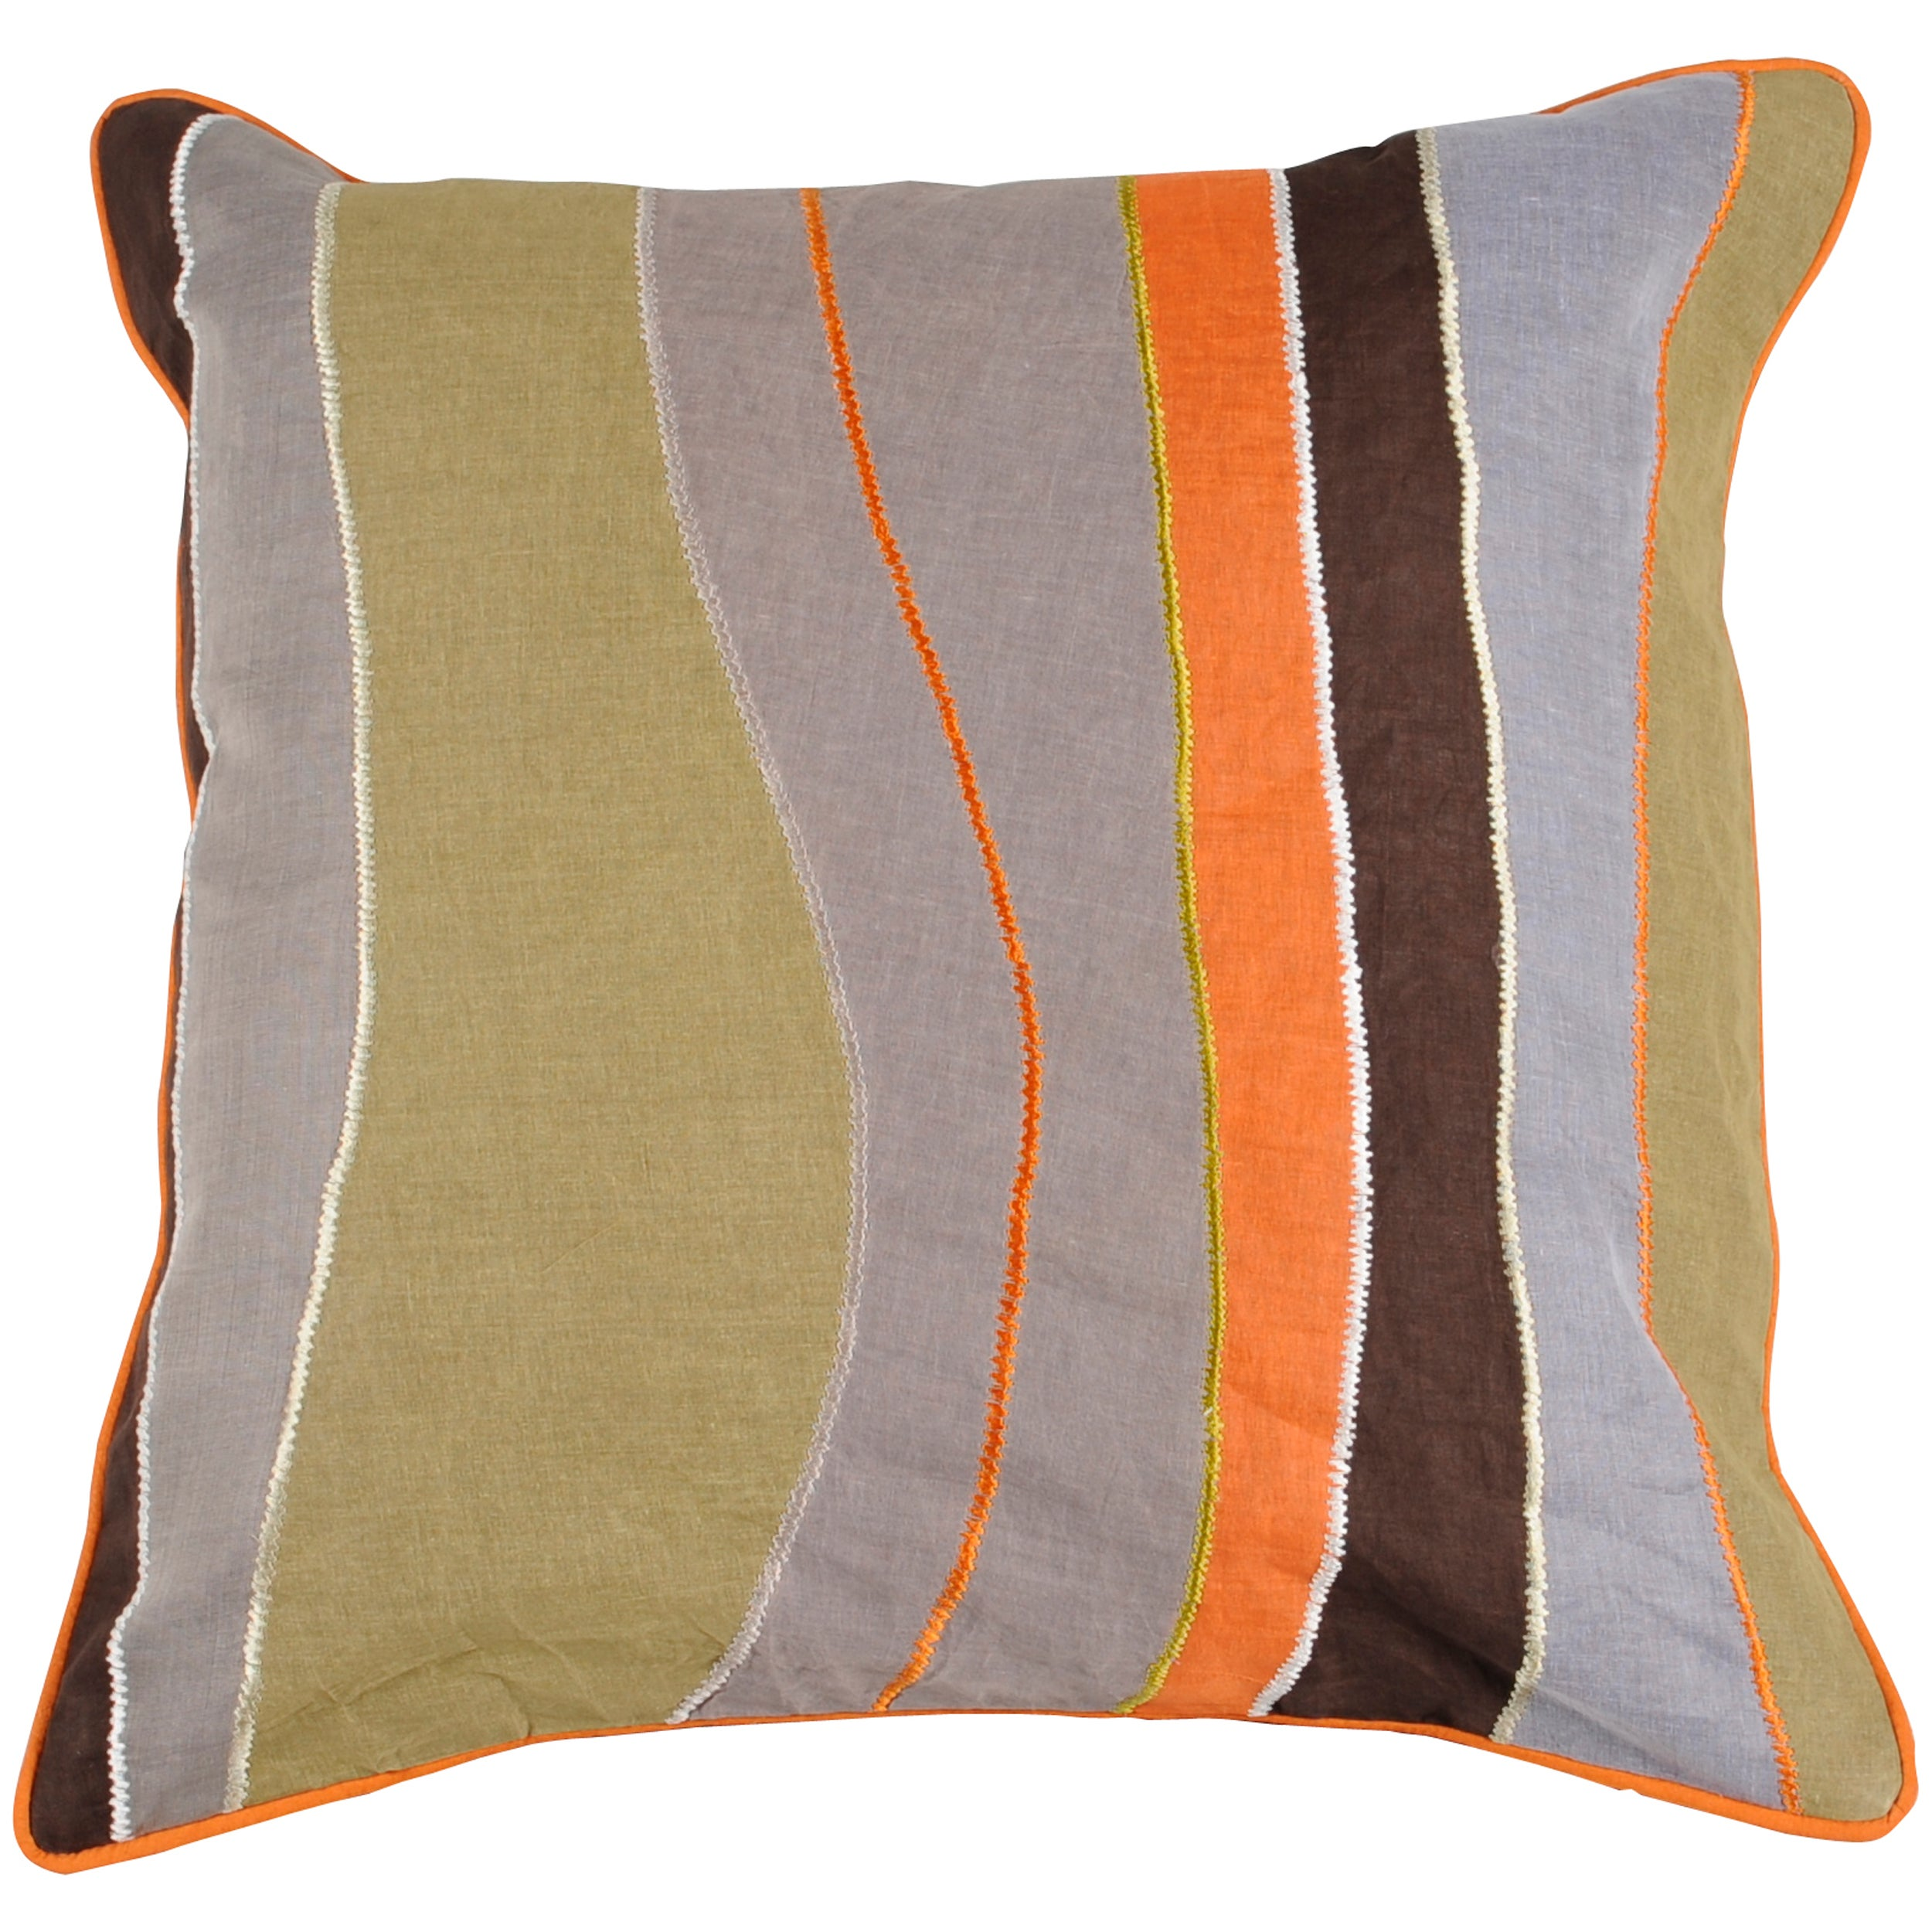 Pate Brown/ Sage/ Grey Stripe 18-inch Square Down Decorative Pillow